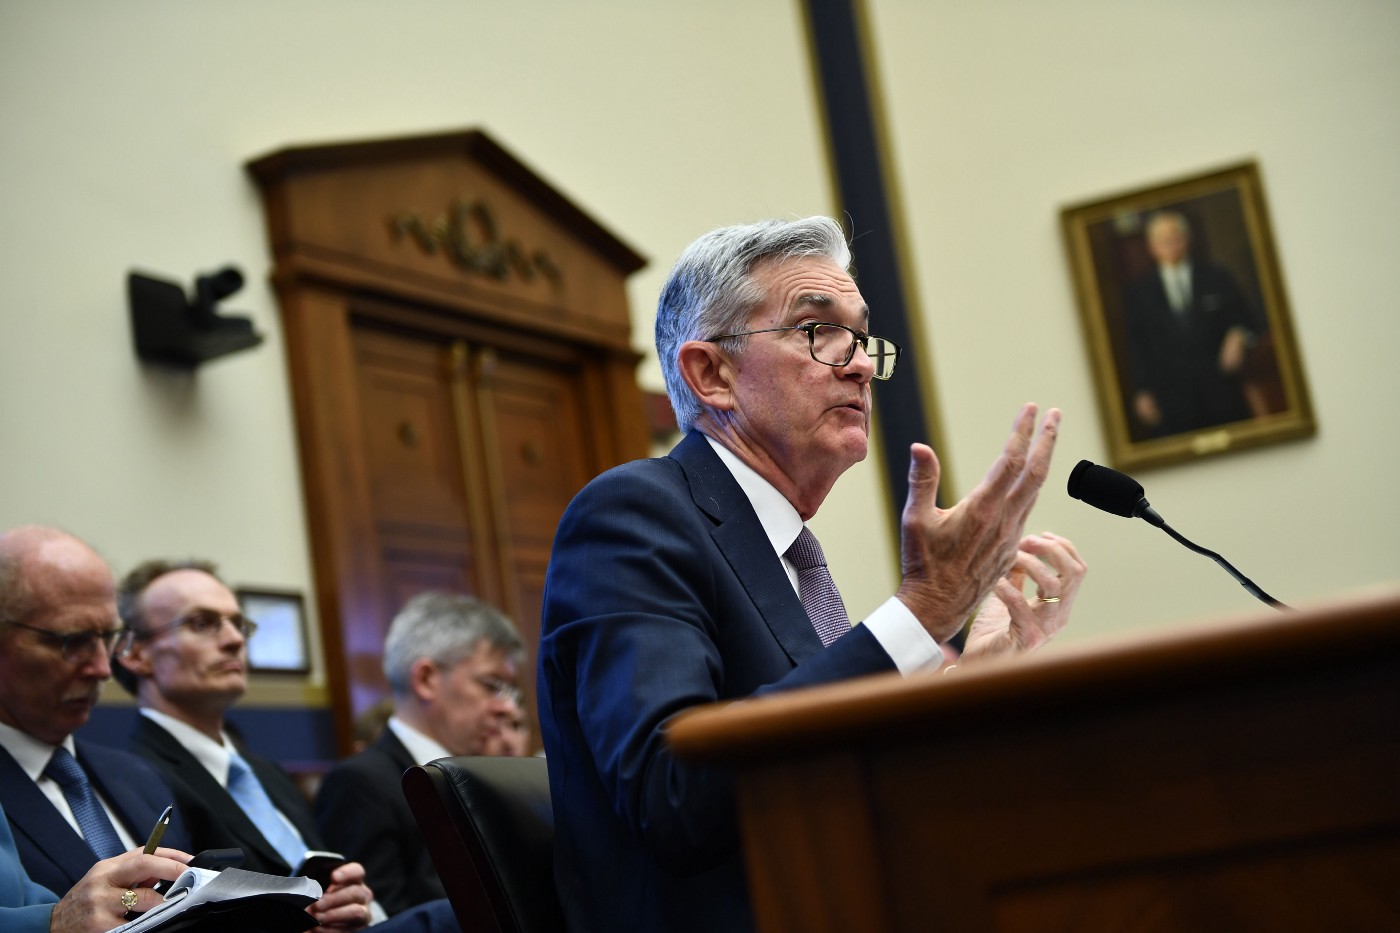 Federal Reserve Board Chairman Jerome Powell testifies during a full committee hearing on July 10, 2019 in Washington, DC.